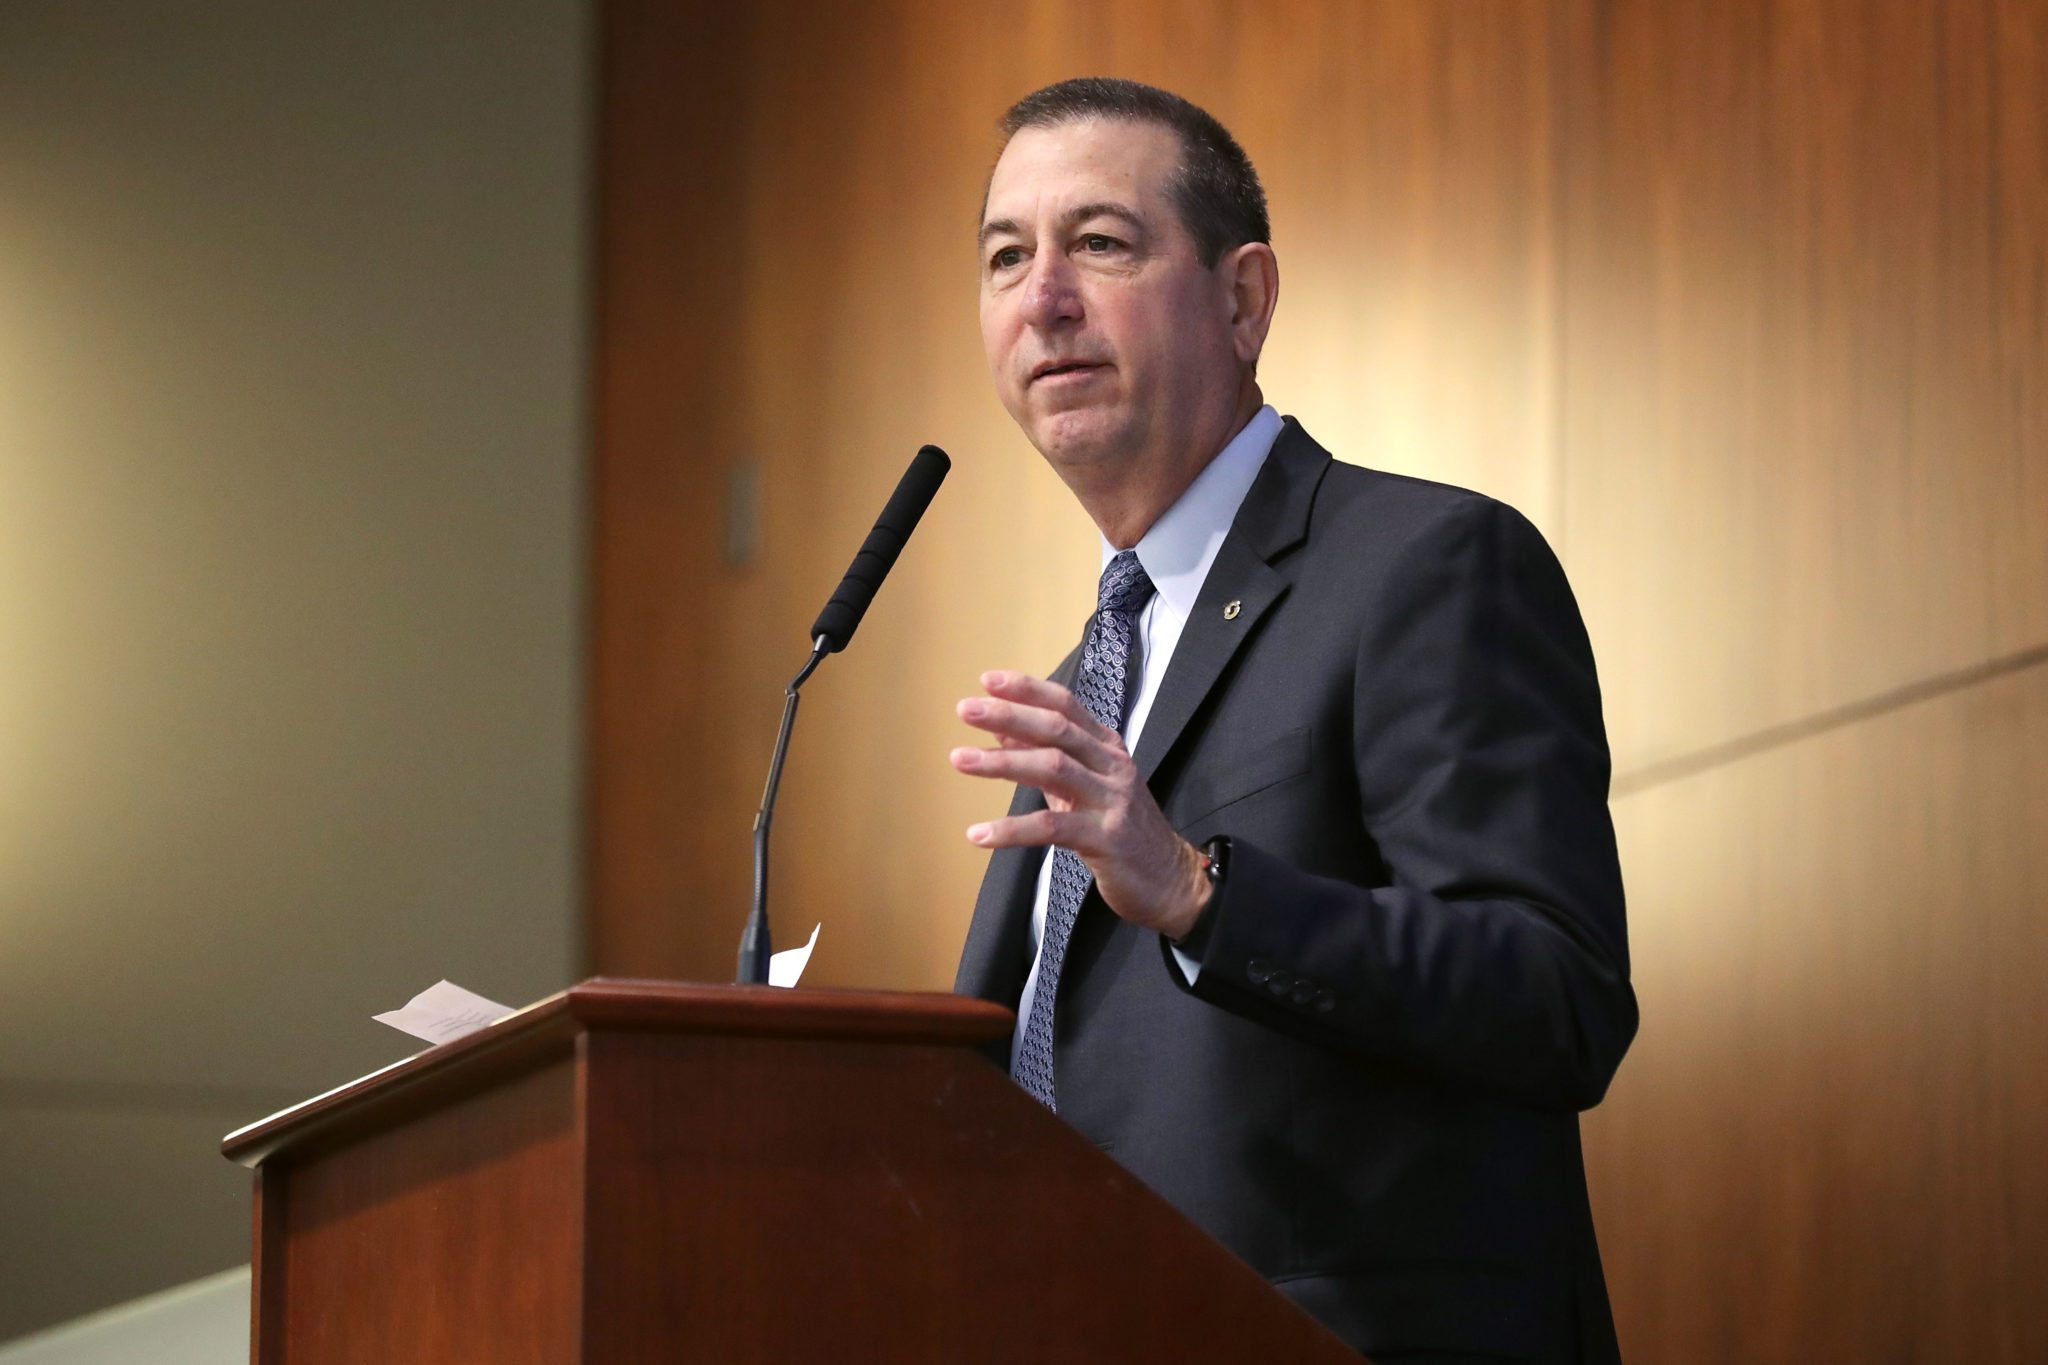 U.S. Comptroller of the Currency Joseph Otting addresses a conference on financial technology, or fintech, at the Federal Deposit Insurance Corporation April 24, 2019 in Arlington, Virginia.